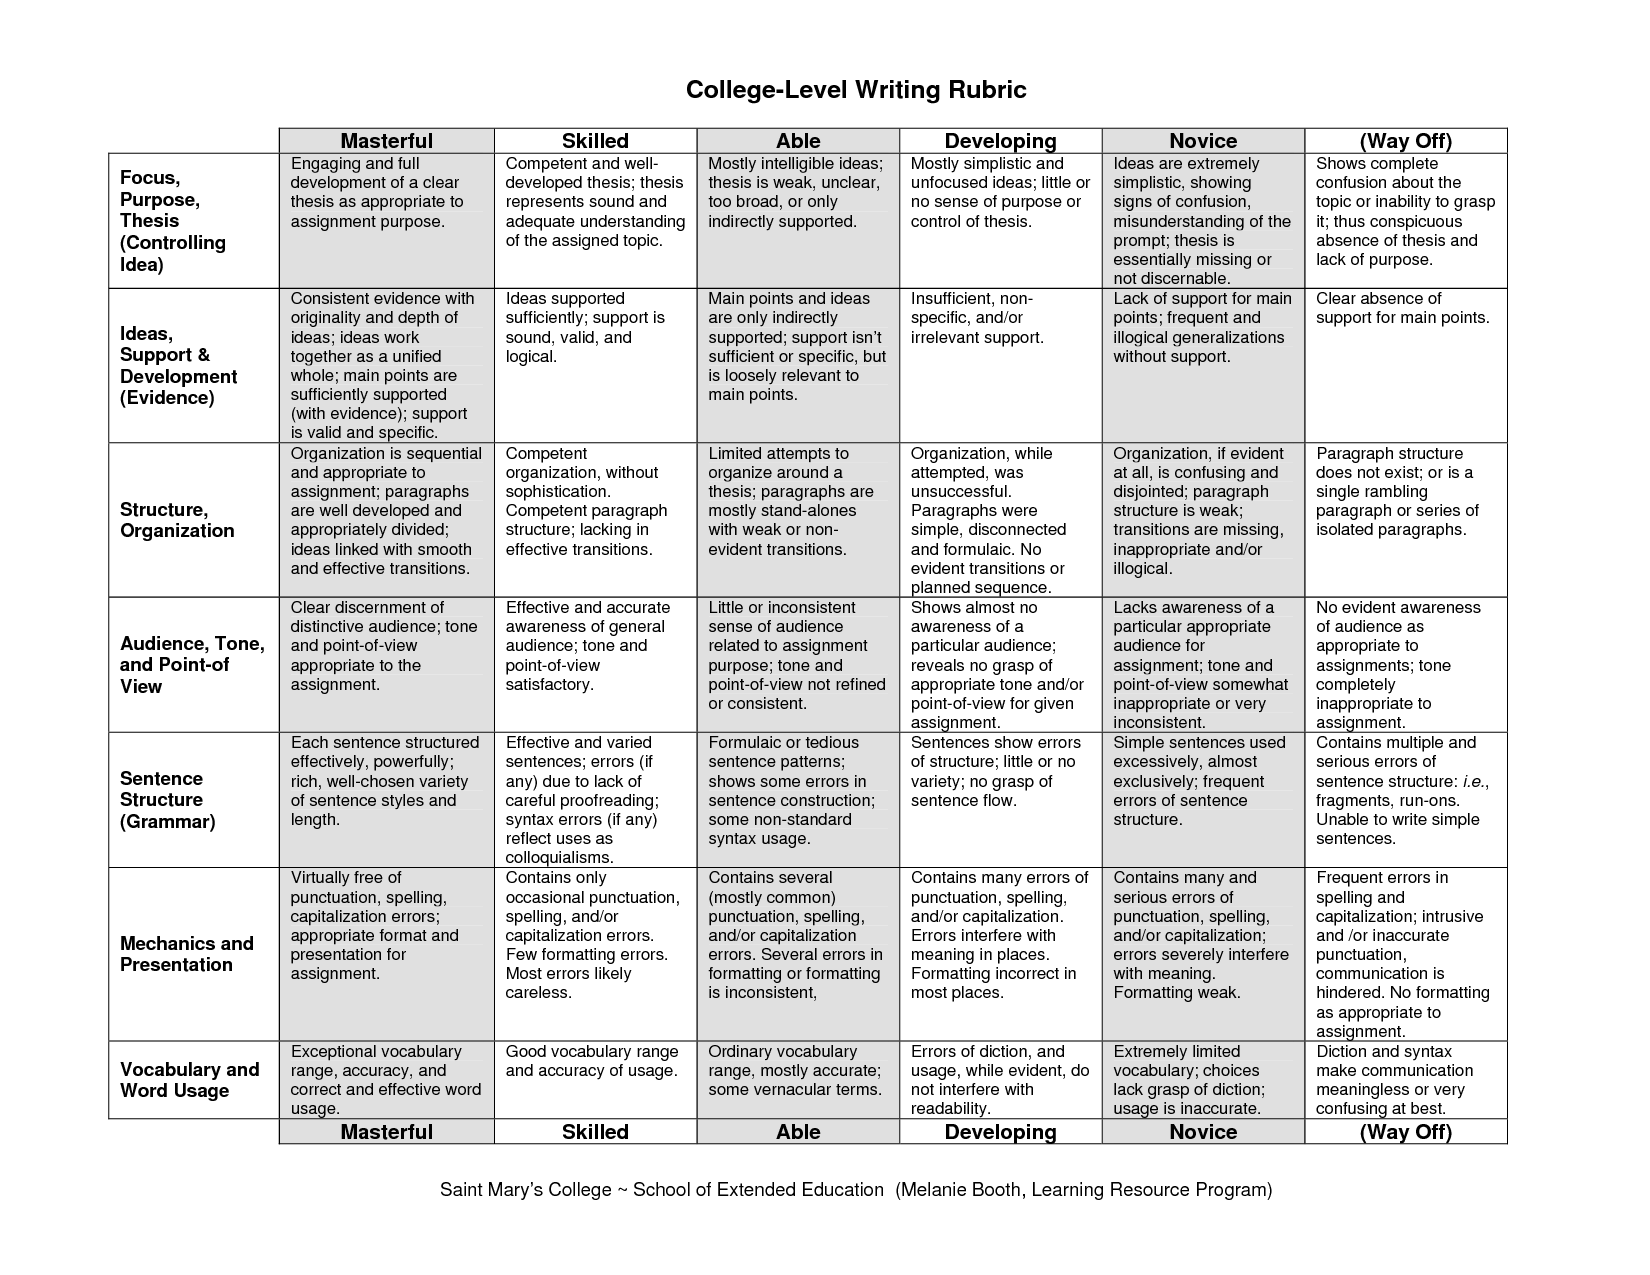 Structures for Active Participation and Learning During Language Arts Instruction